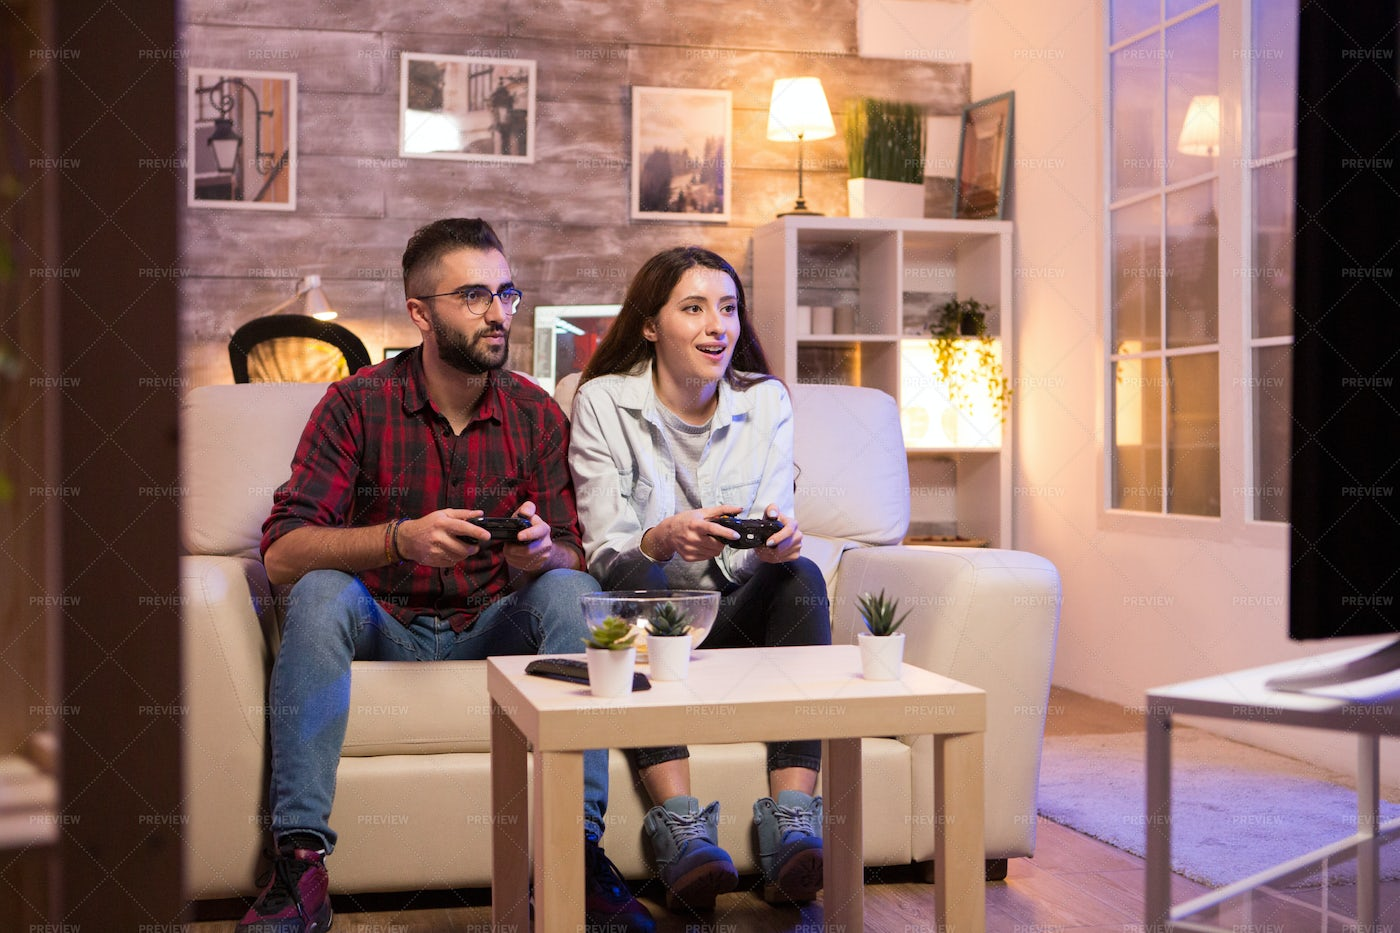 Game Night At Home: Stock Photos